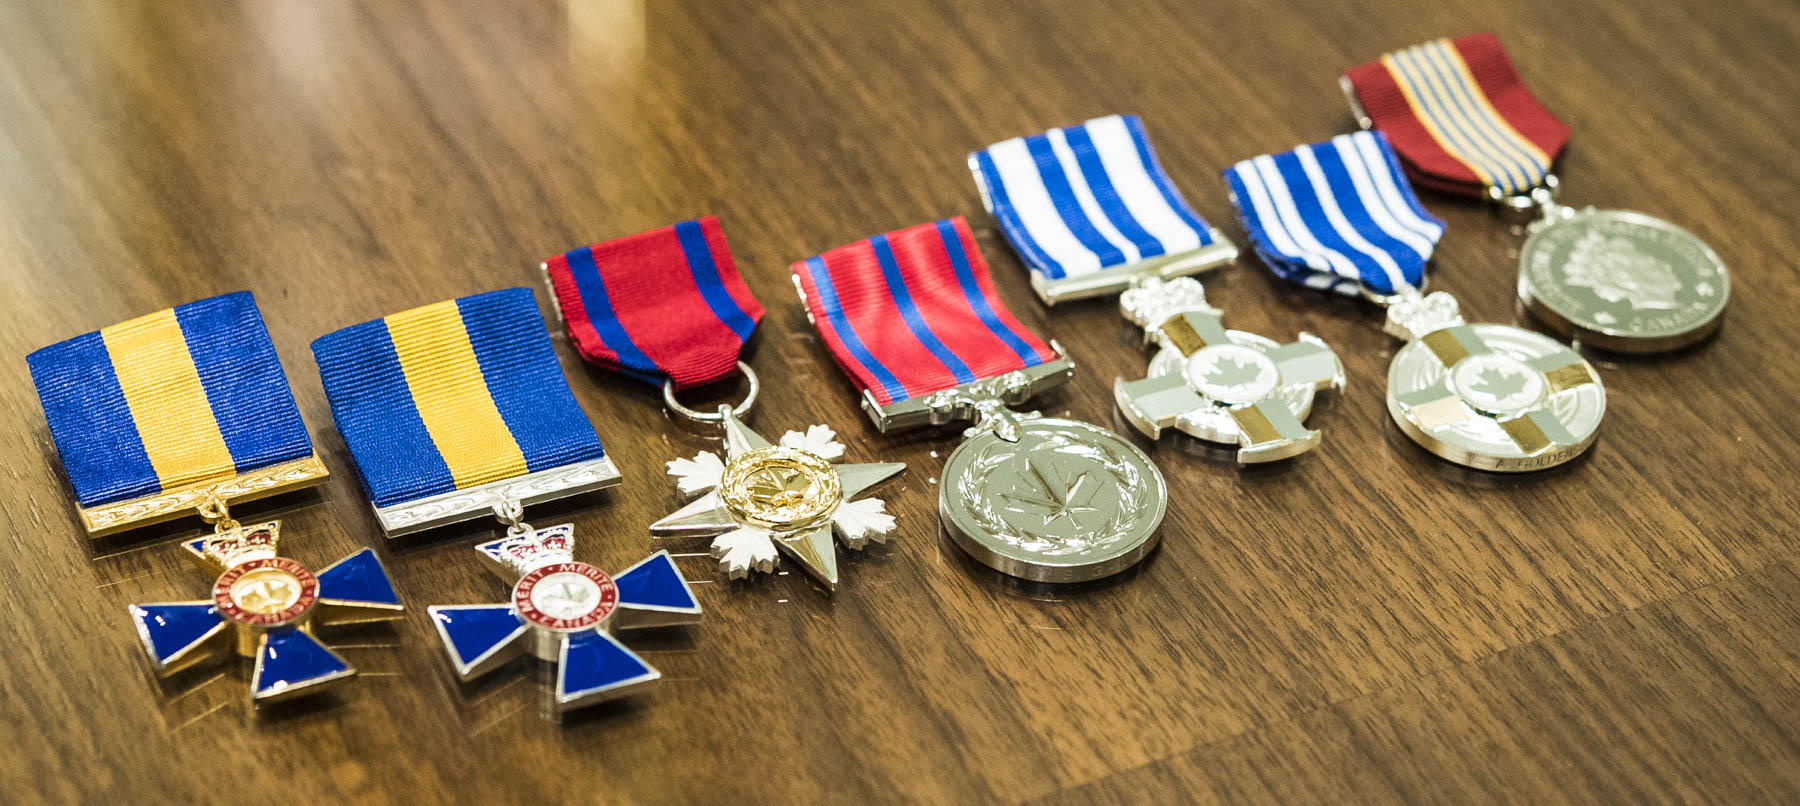 The Governor General presented honours to 43 recipients who were recognized for their excellence, courage and exceptional dedication to service.